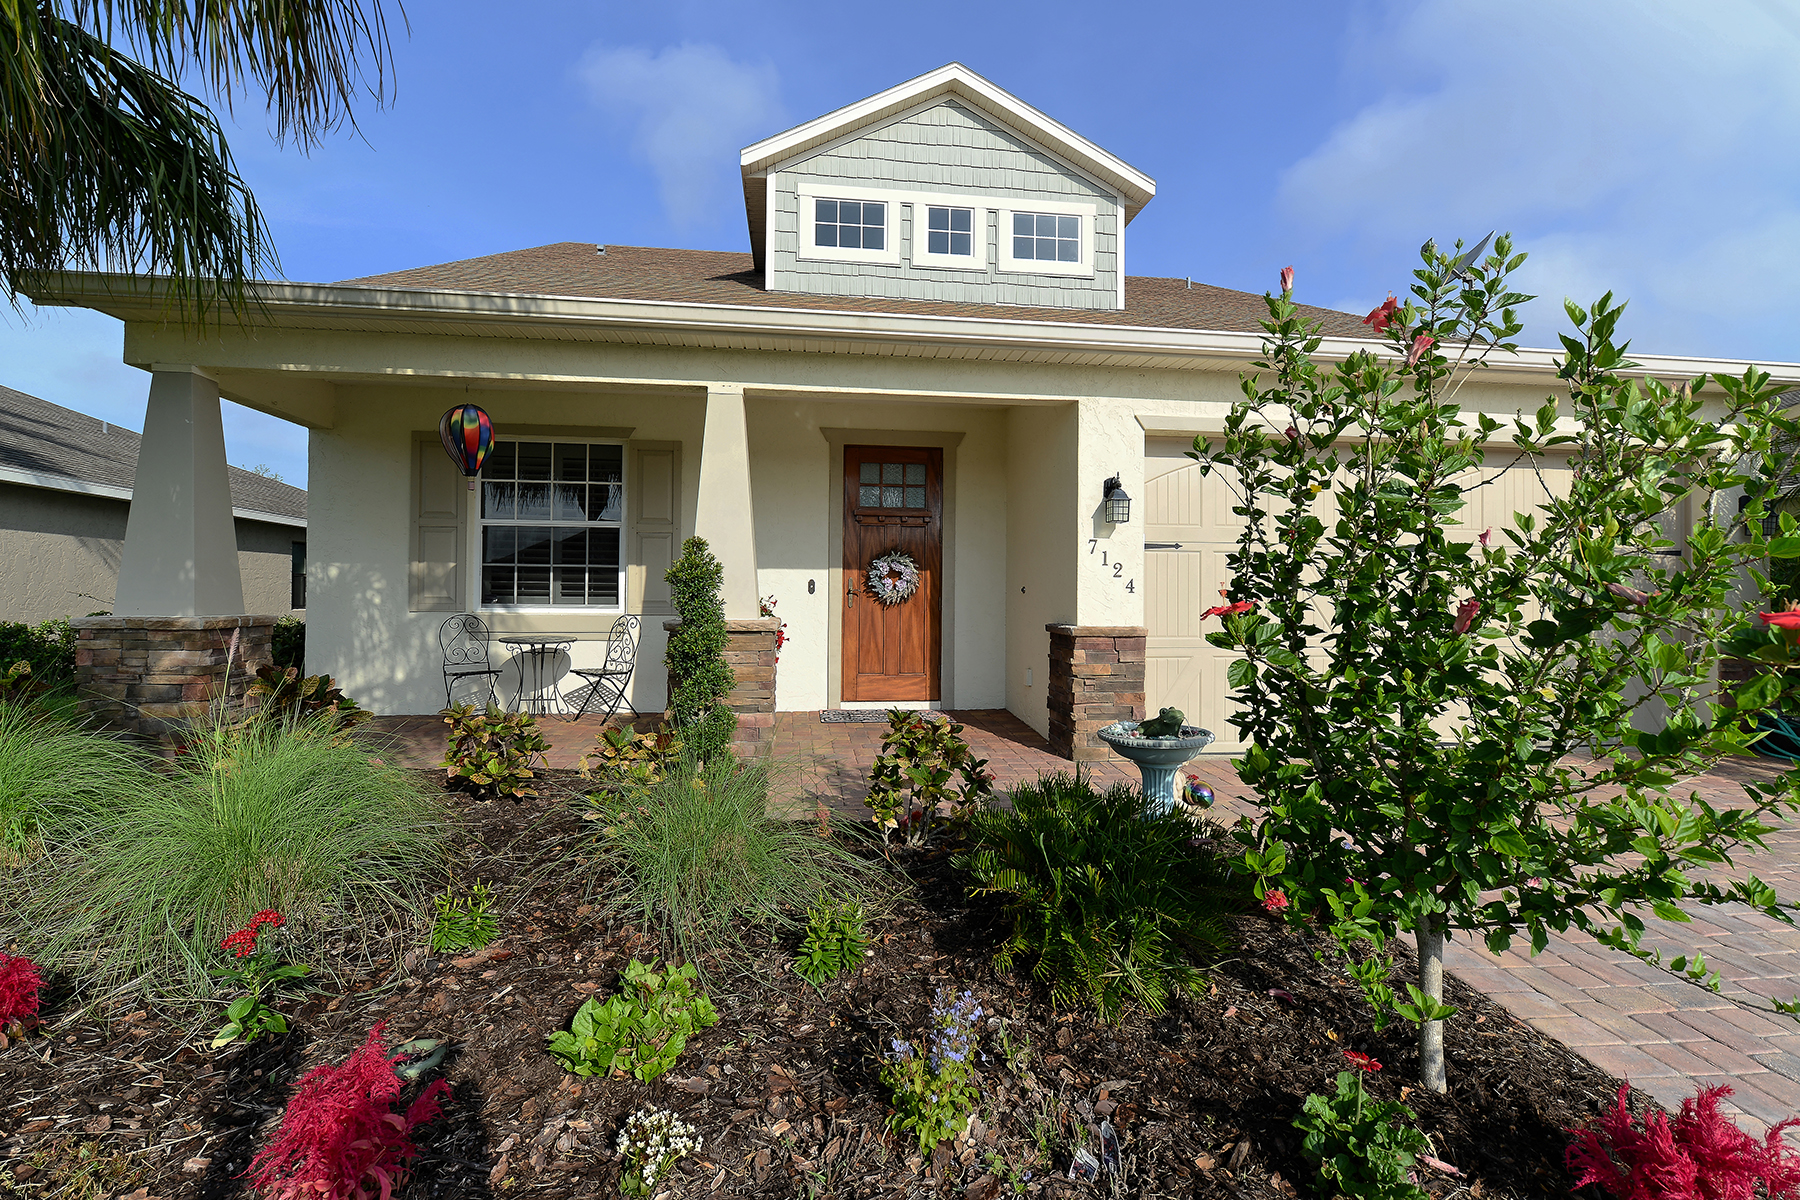 Single Family Home for Sale at COTTAGES AT BLU VISTA 7124 34th St E Sarasota, Florida, 34243 United States